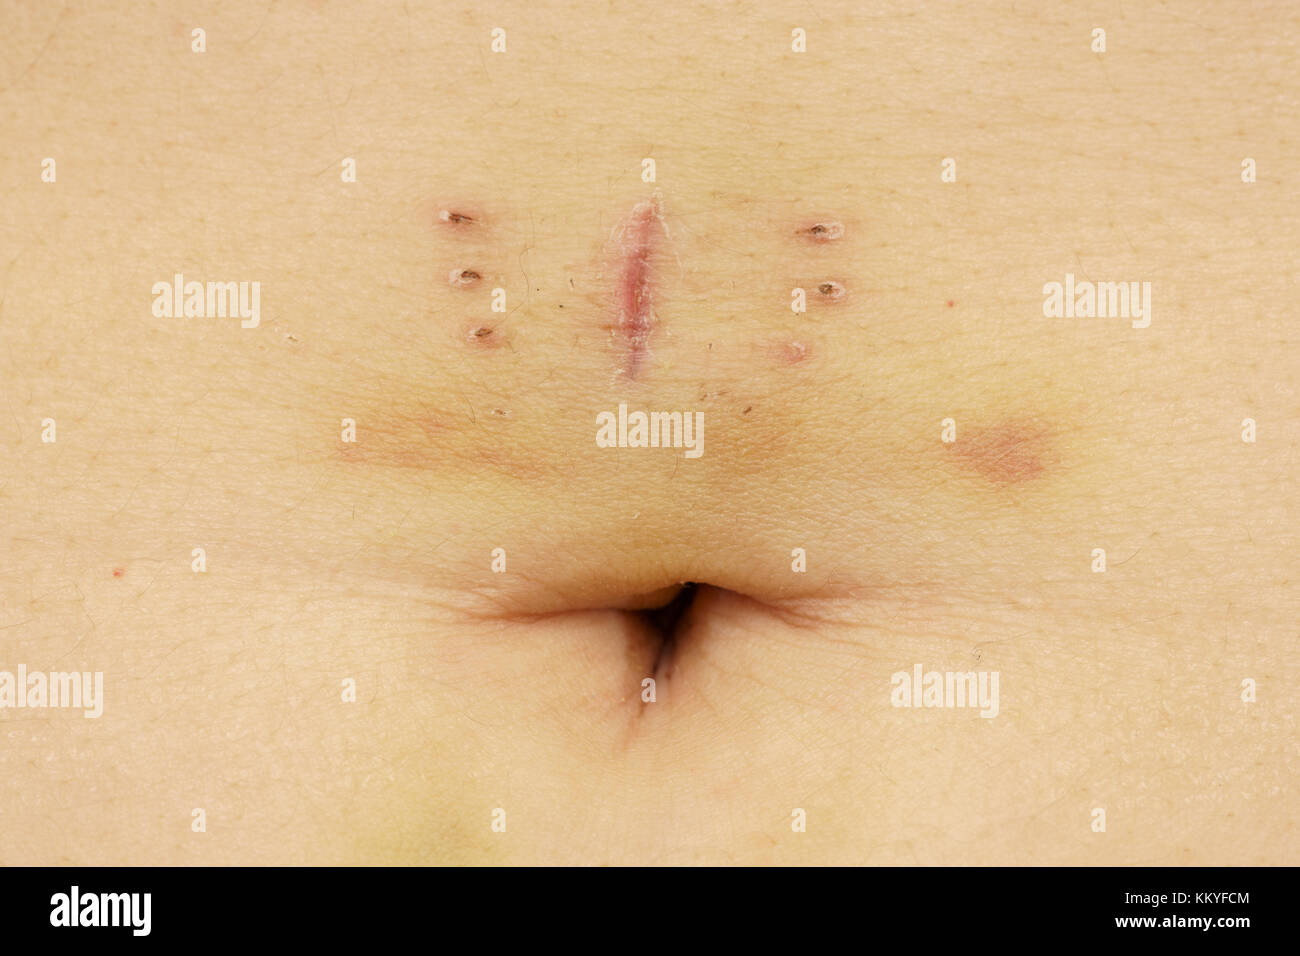 Scar with bruise and belly button closeup after hysterectomy - Stock Image